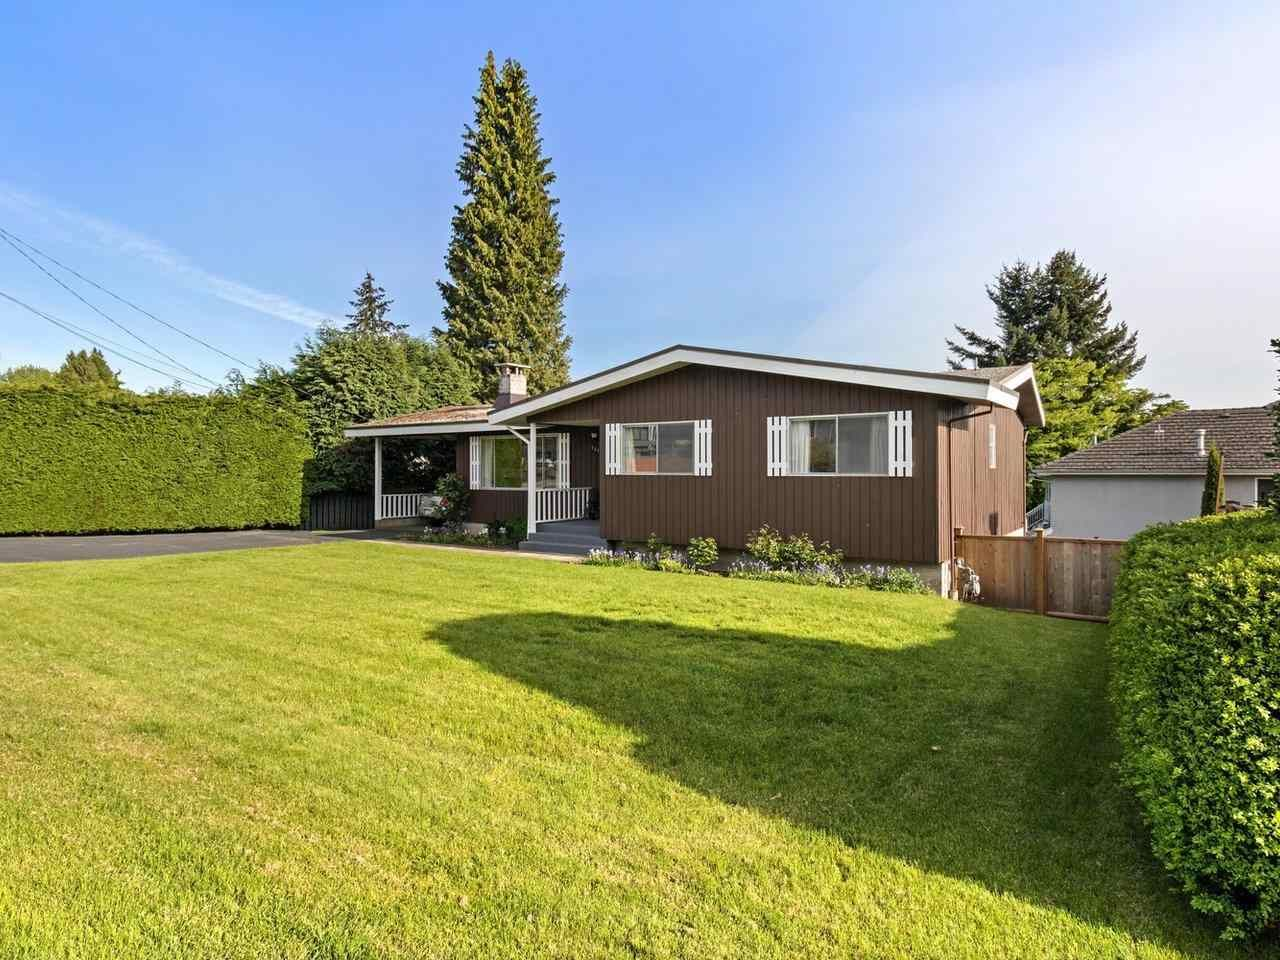 Main Photo: 1510 CHARLAND Avenue in Coquitlam: Central Coquitlam House for sale : MLS®# R2577681